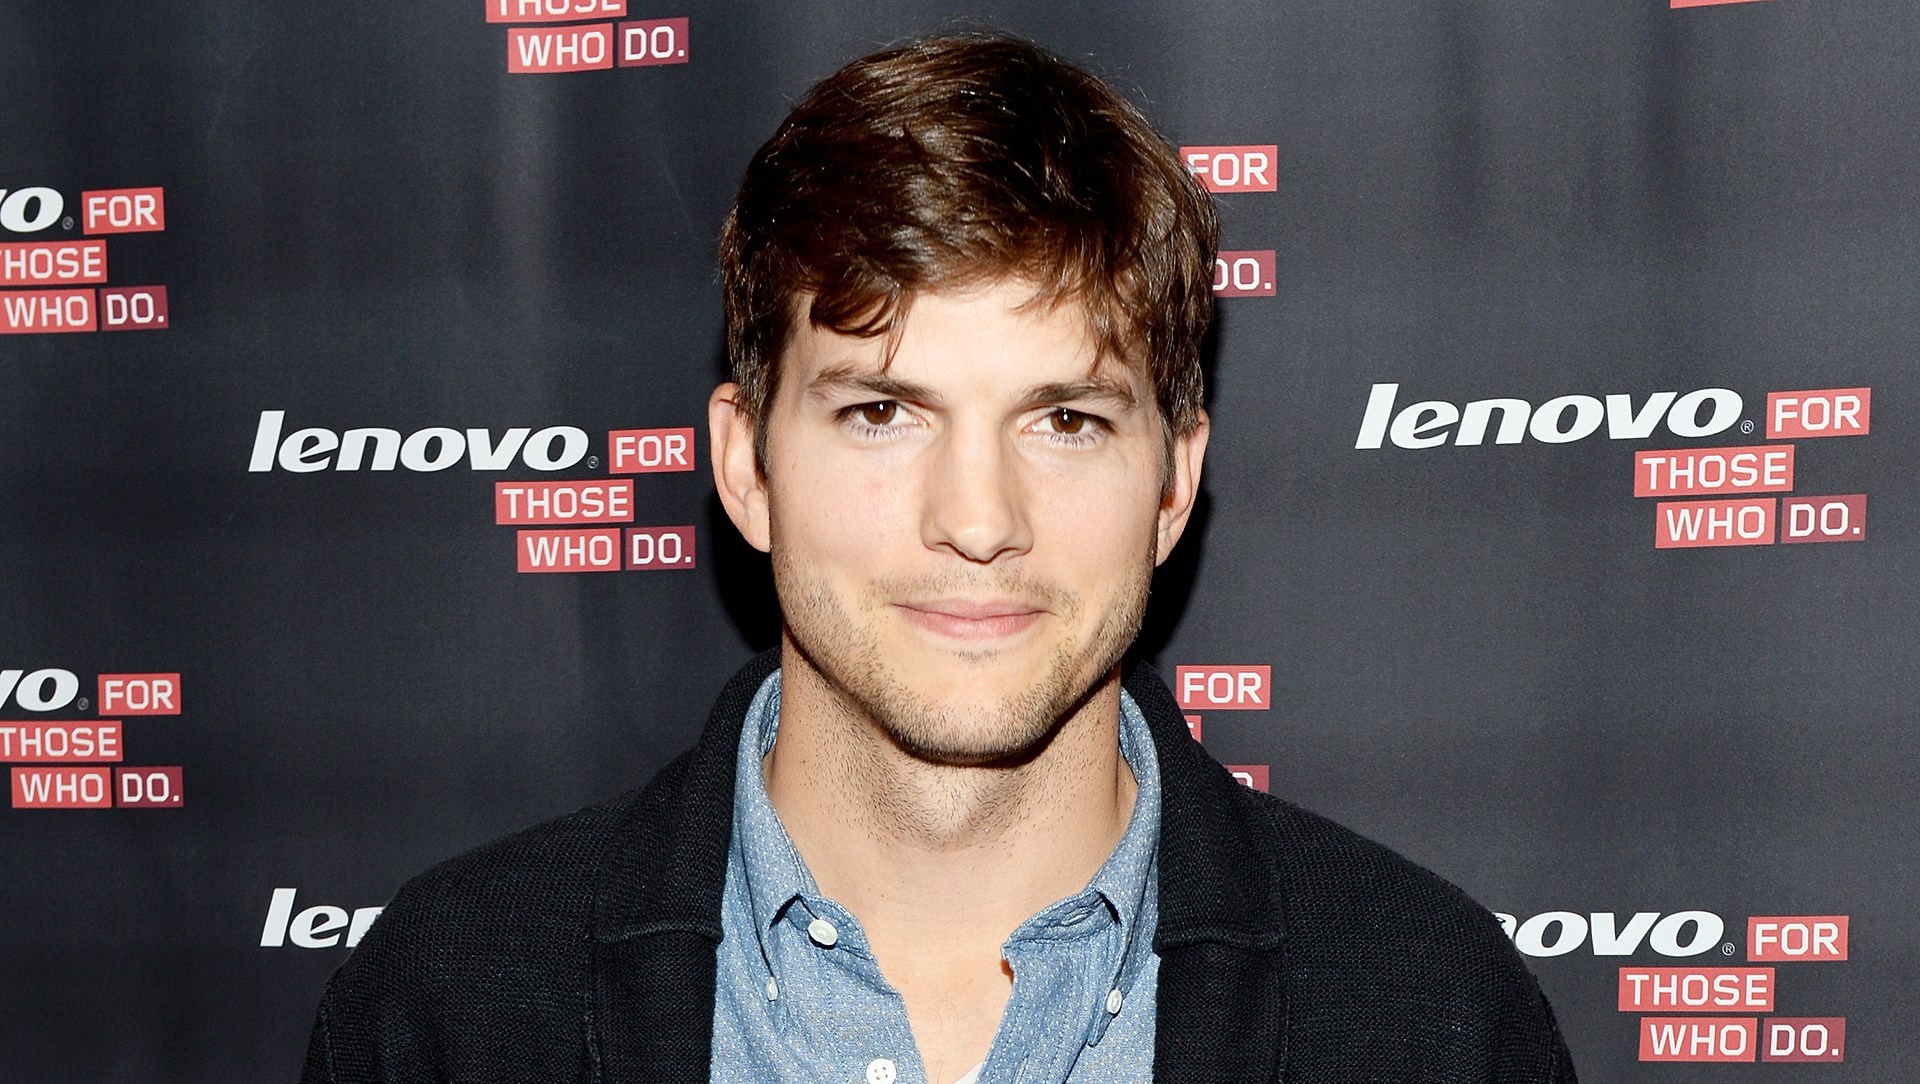 Ashton Kutcher Hit Man With Car Takes Photo